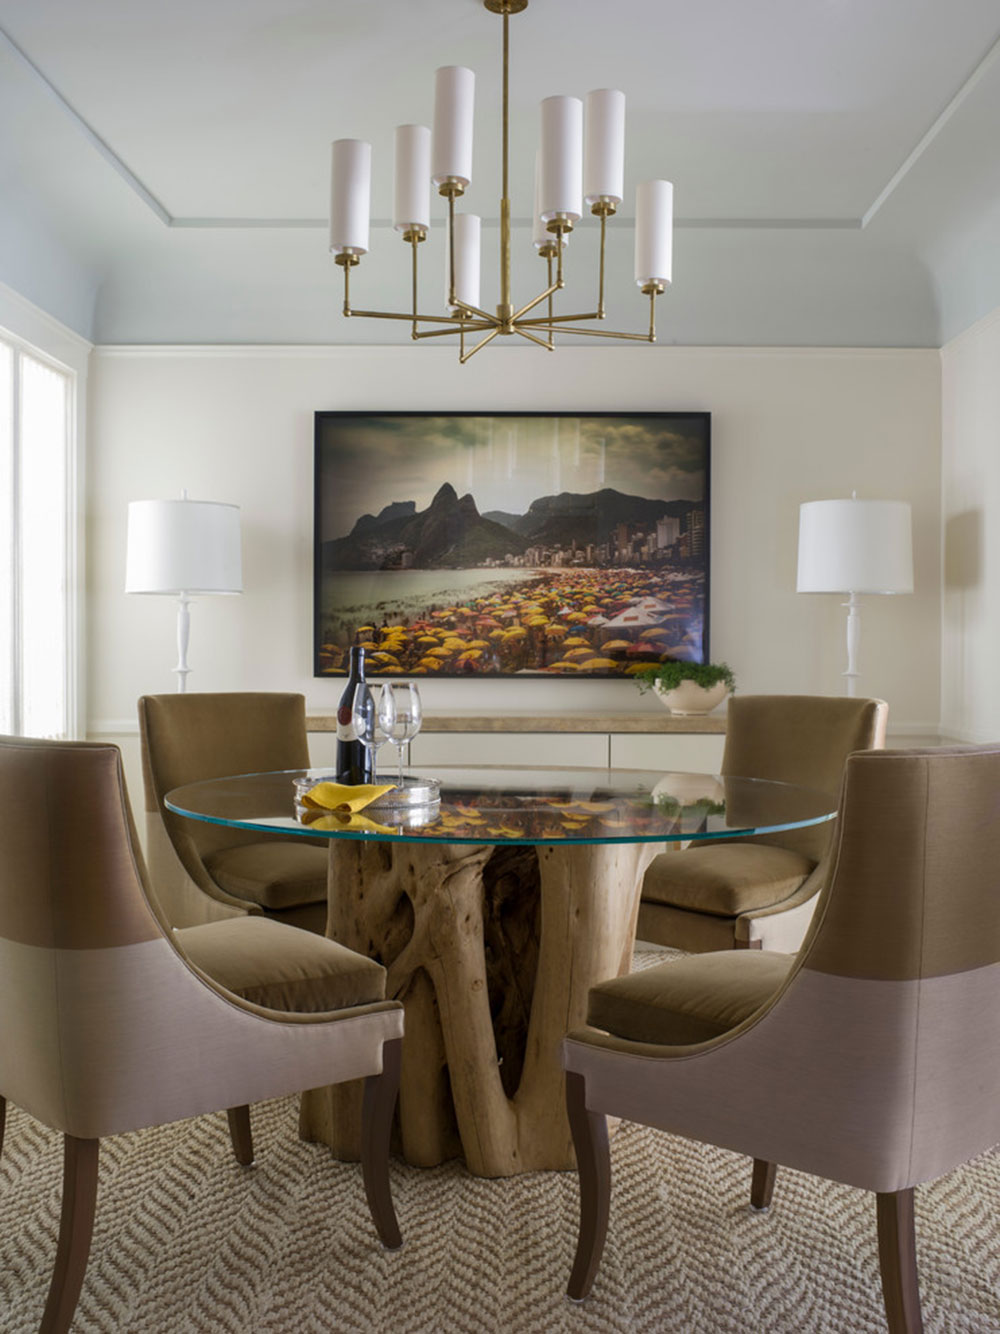 How to choose a chandelier for the dining room11 How to choose a chandelier for the dining room